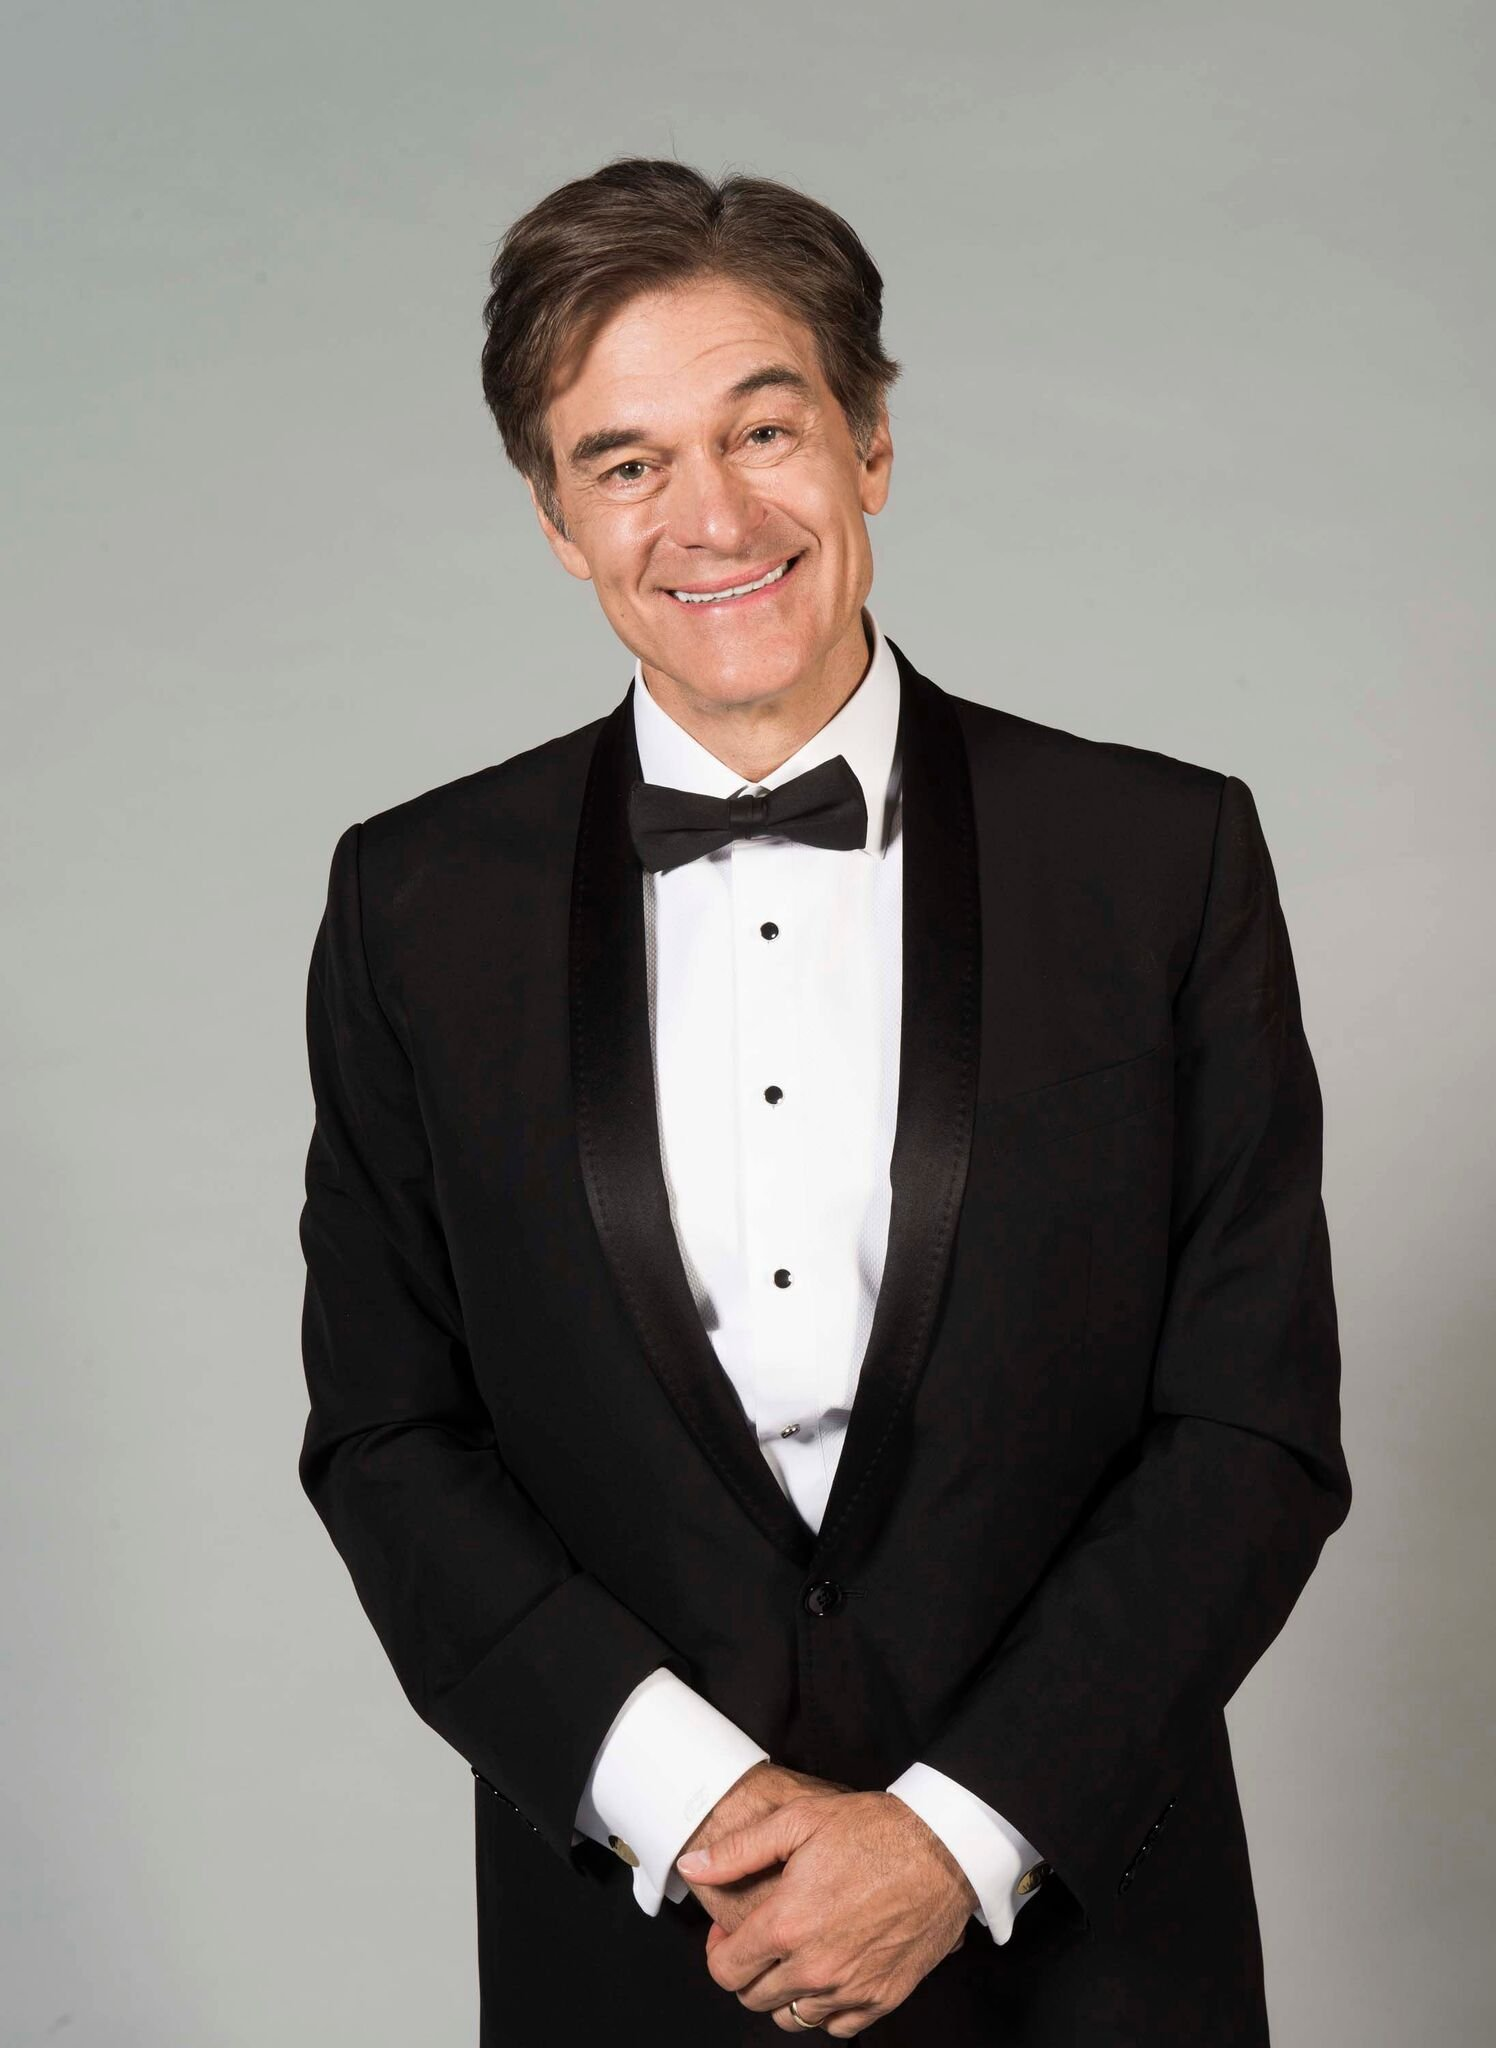 Dr. Oz poses for portrait at 45th Daytime Emmy Awards - Portraits by The Artists Project Sponsored by the Visual Snow Initiative | Getty Images / Global Images Ukraine